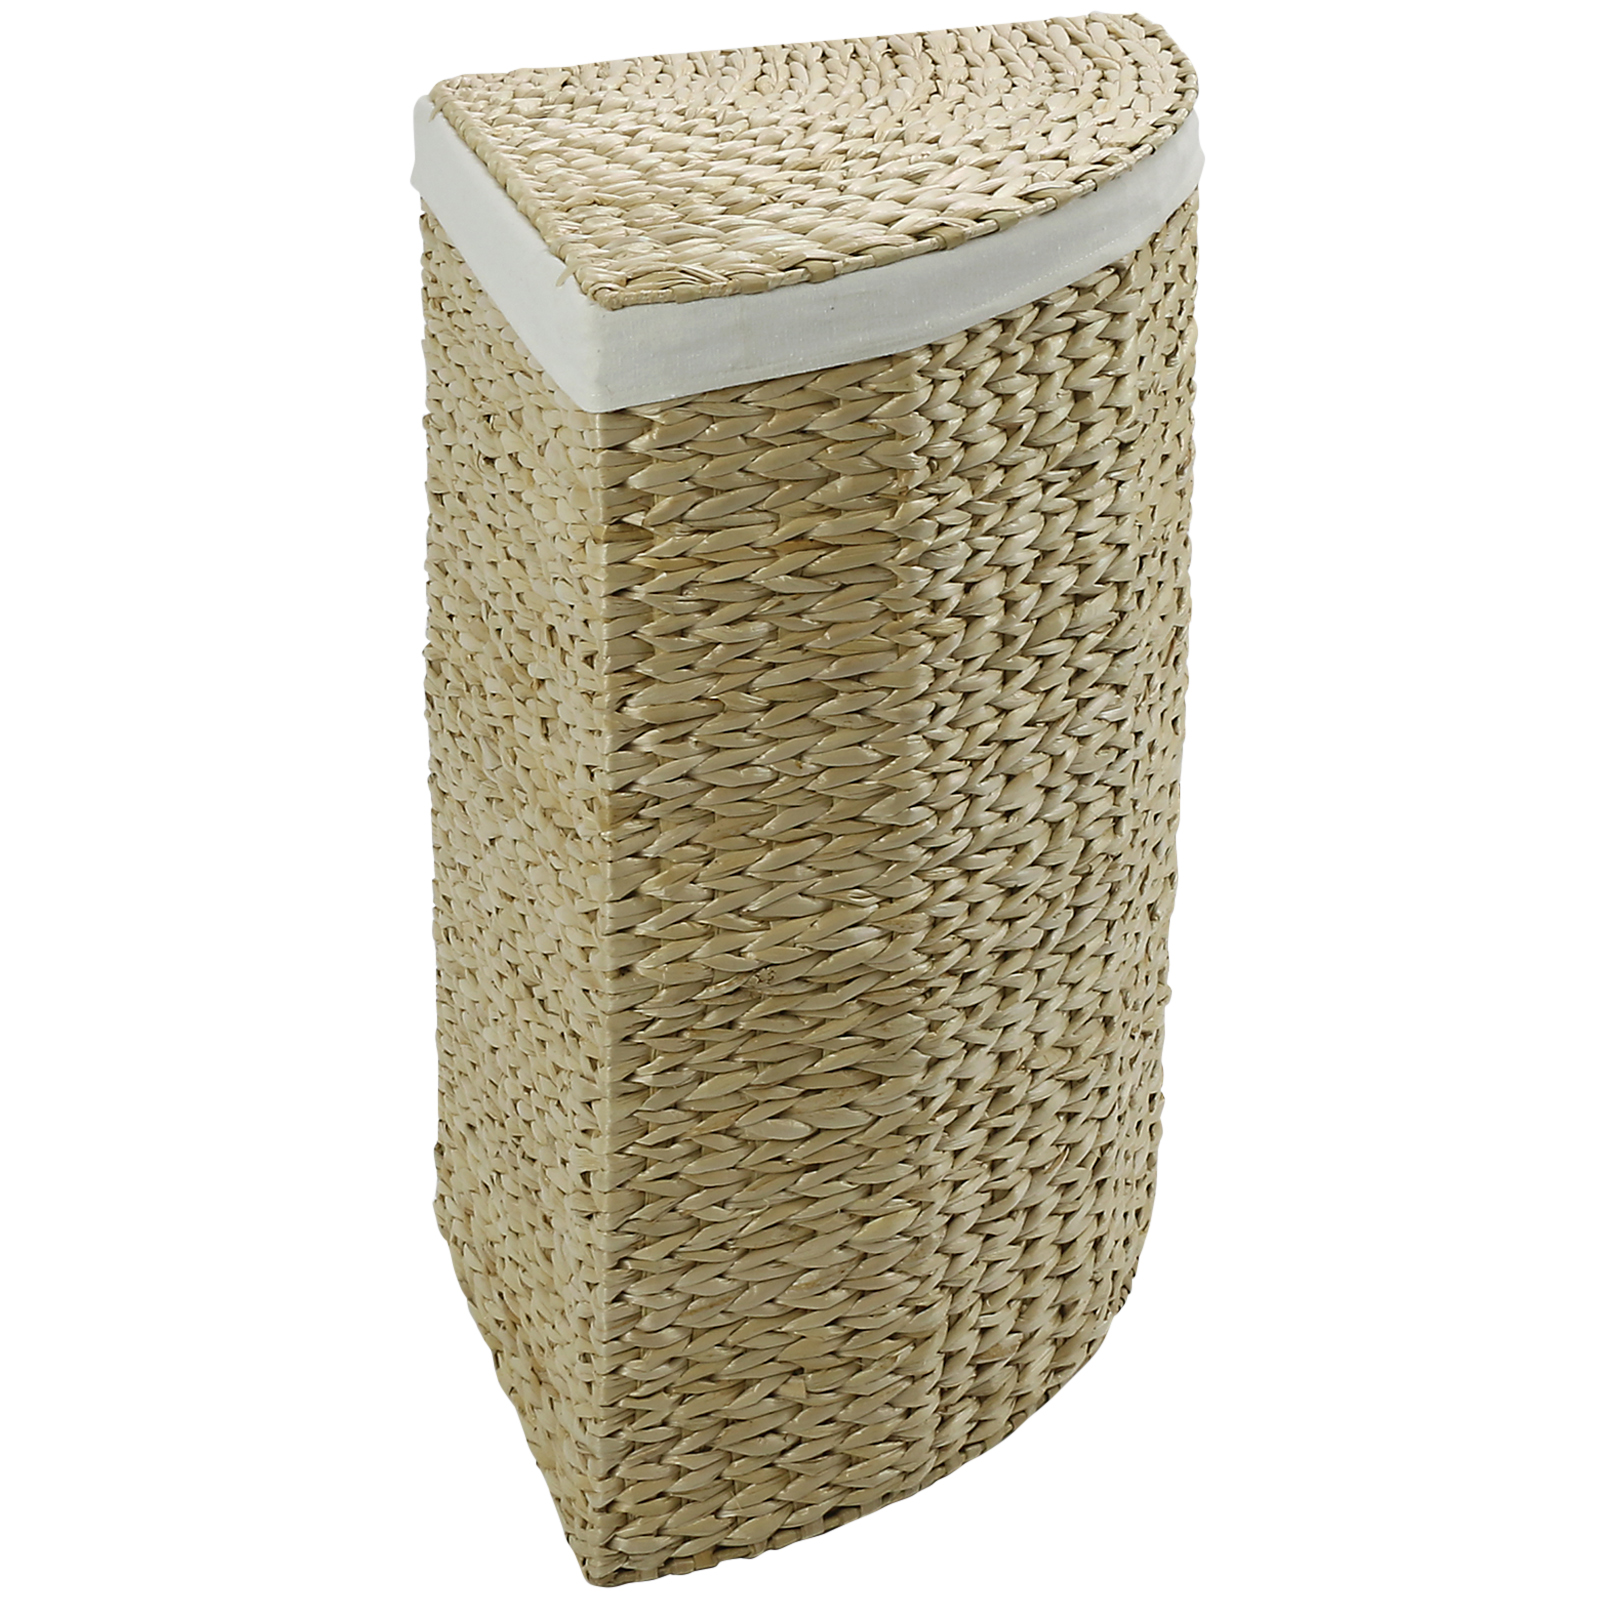 Corner Laundry Hartleys Corner Laundry Basket Hamper Compact Wicker Large